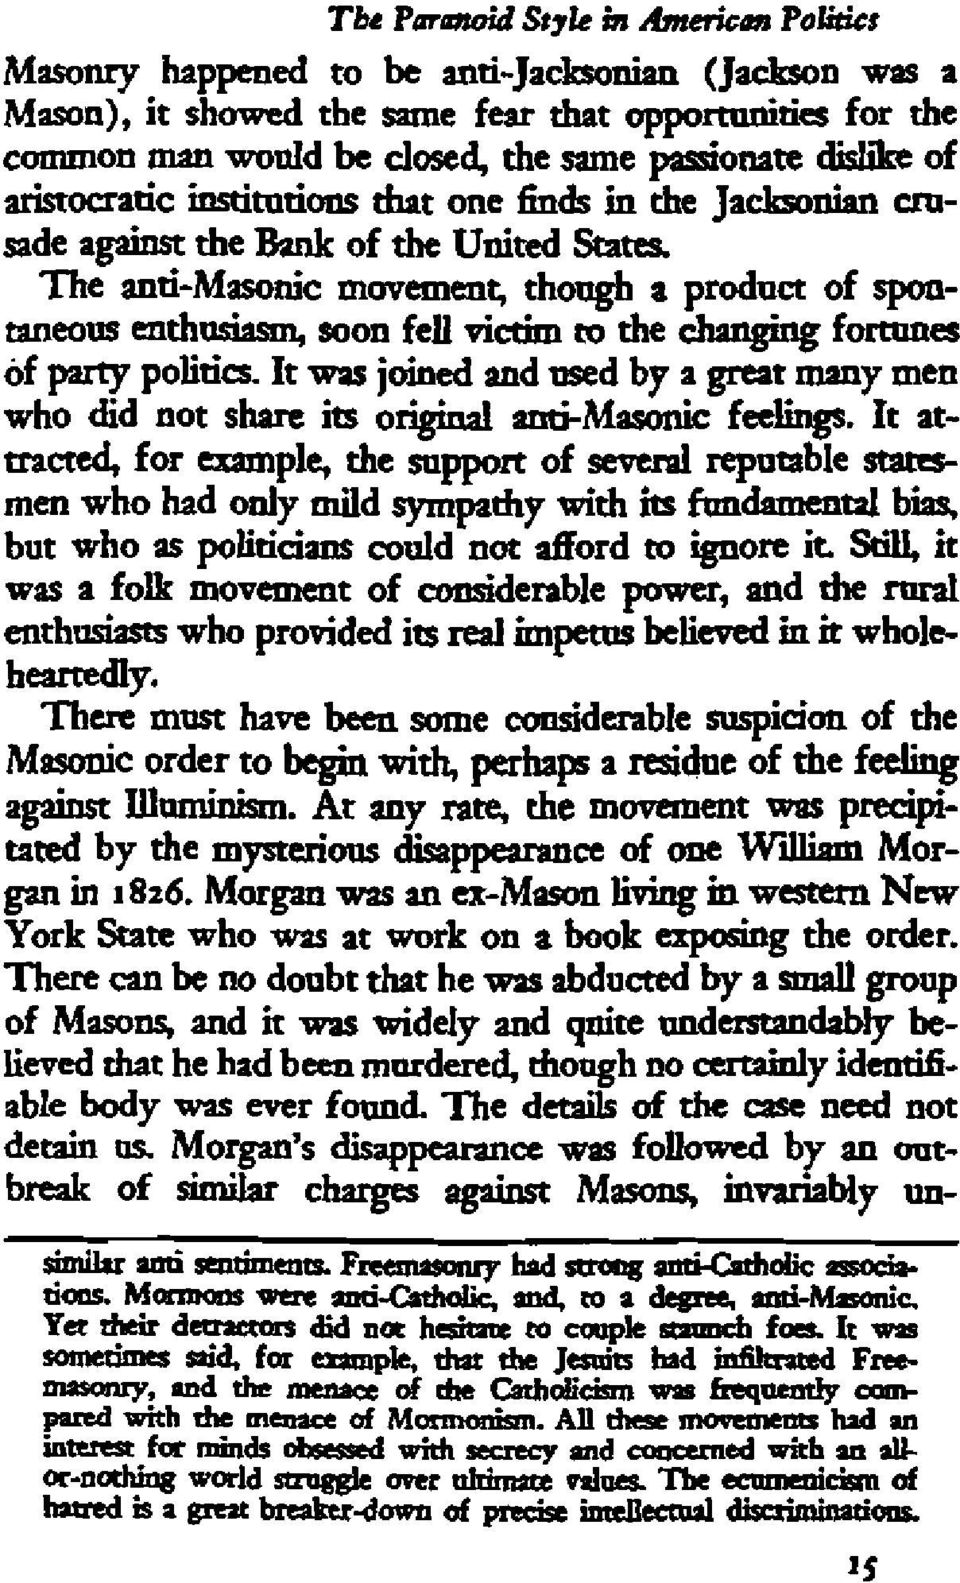 The anti-masonic movement, though a product of spontaneous enthusiasm, soon fell victim to the changing fortwles of party politics.